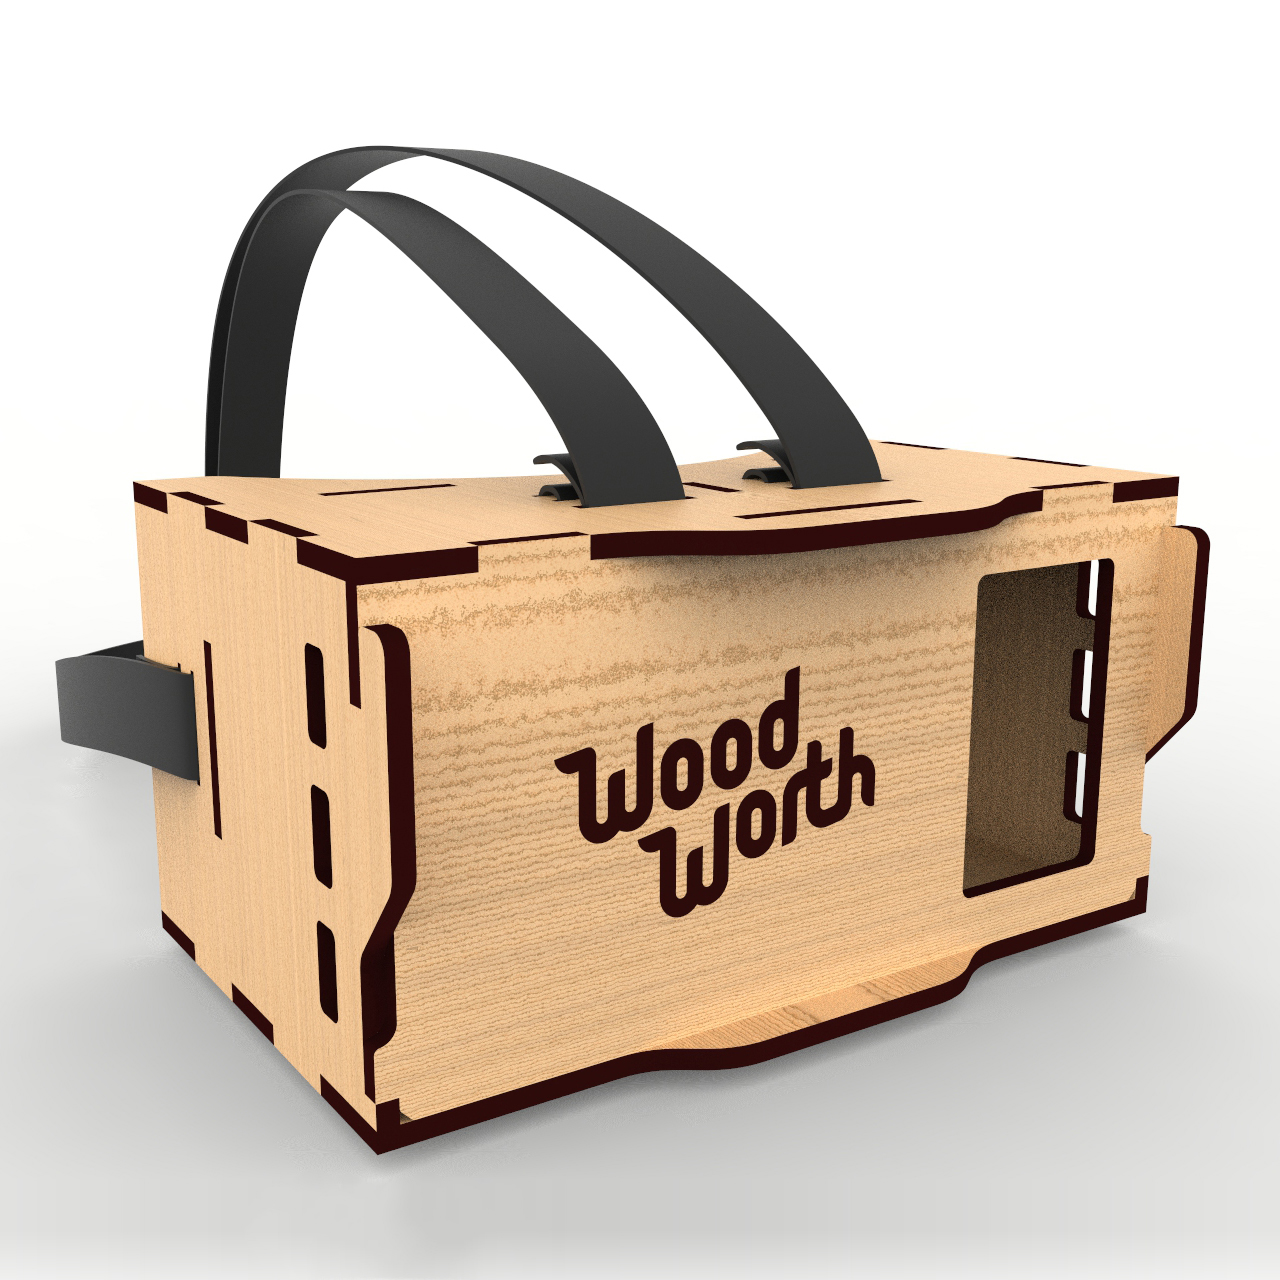 Plywood VR-glasses